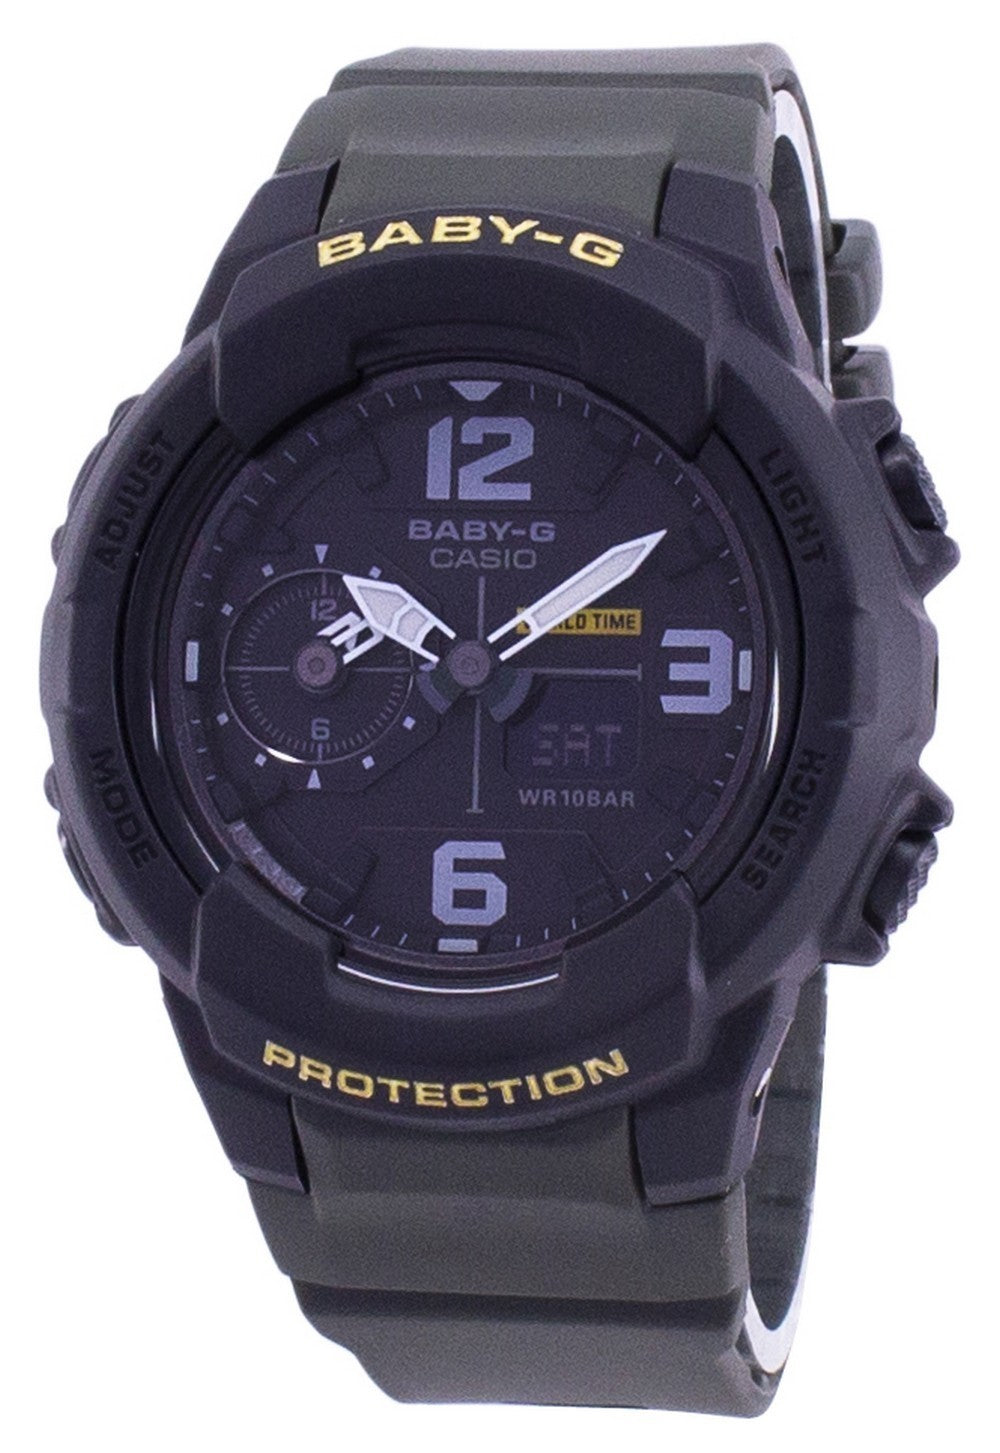 Casio Baby-G Shock Resistant World Time Analog Digital BGA-230-3B BGA230-3B Unisex Watch